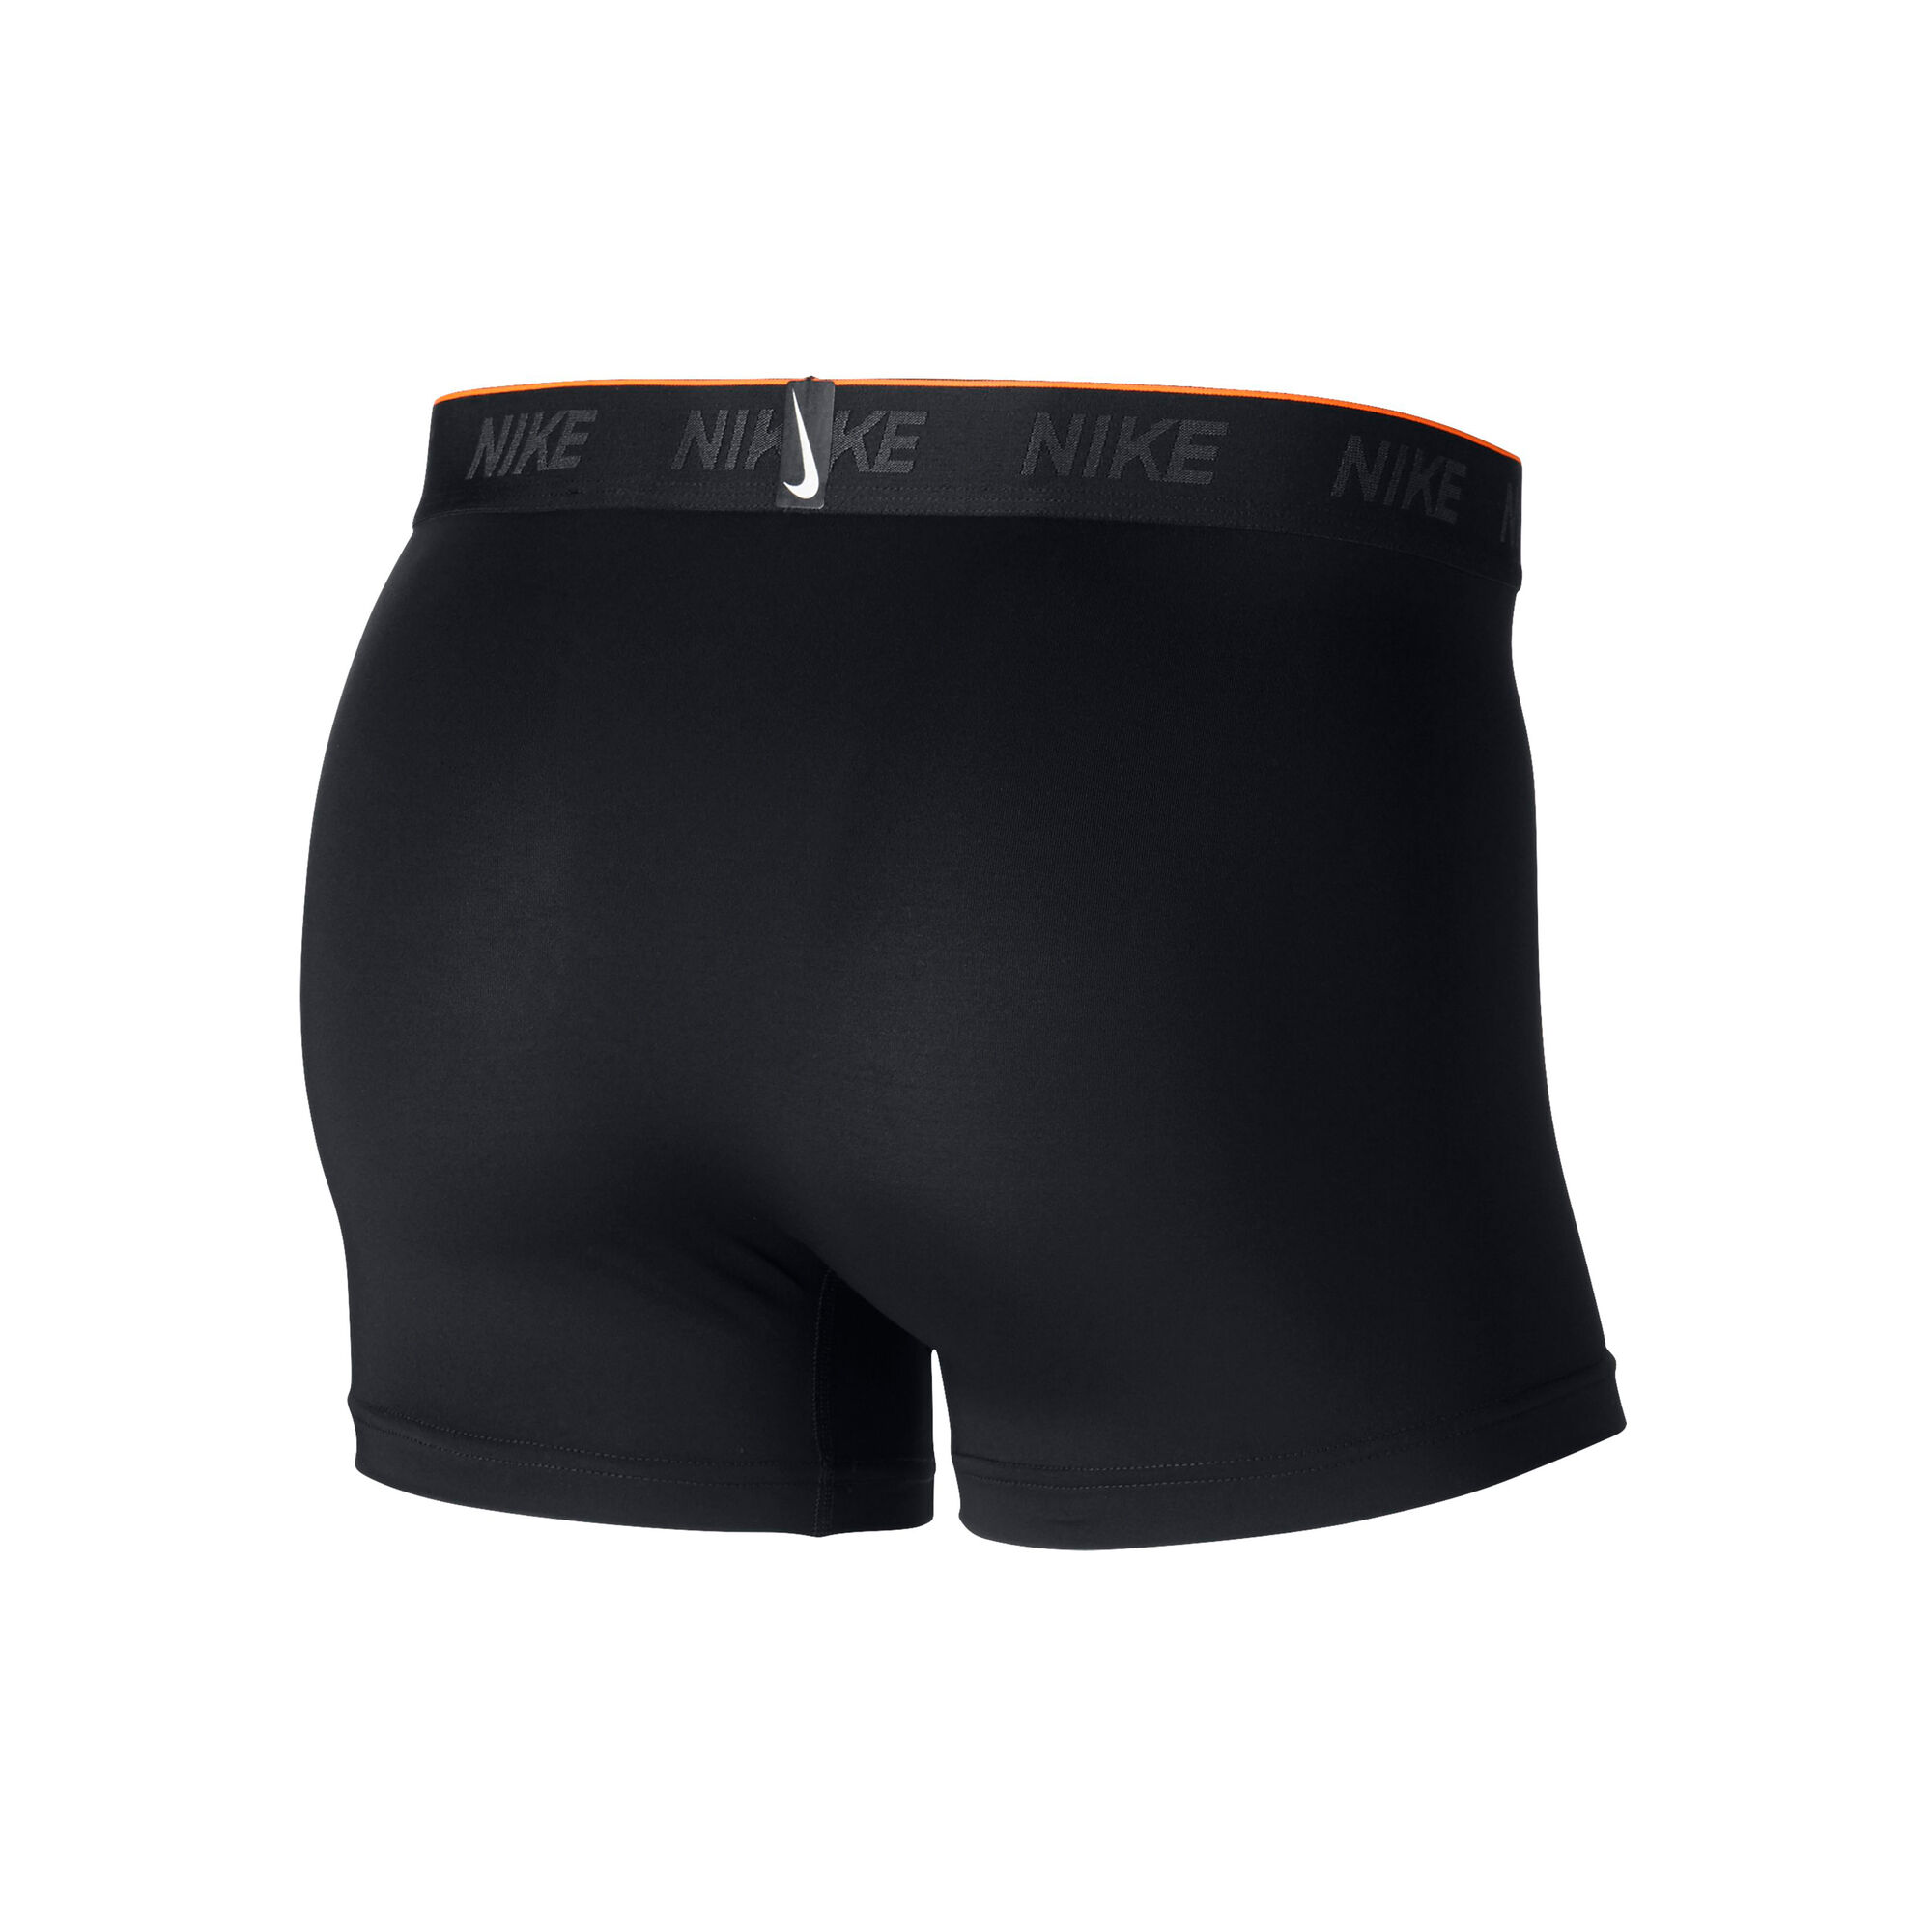 feo Monarca Ecología  buy Nike Brief Trunk Boxer Shorts 2 Pack Men - Black, Dark Grey online |  Tennis-Point